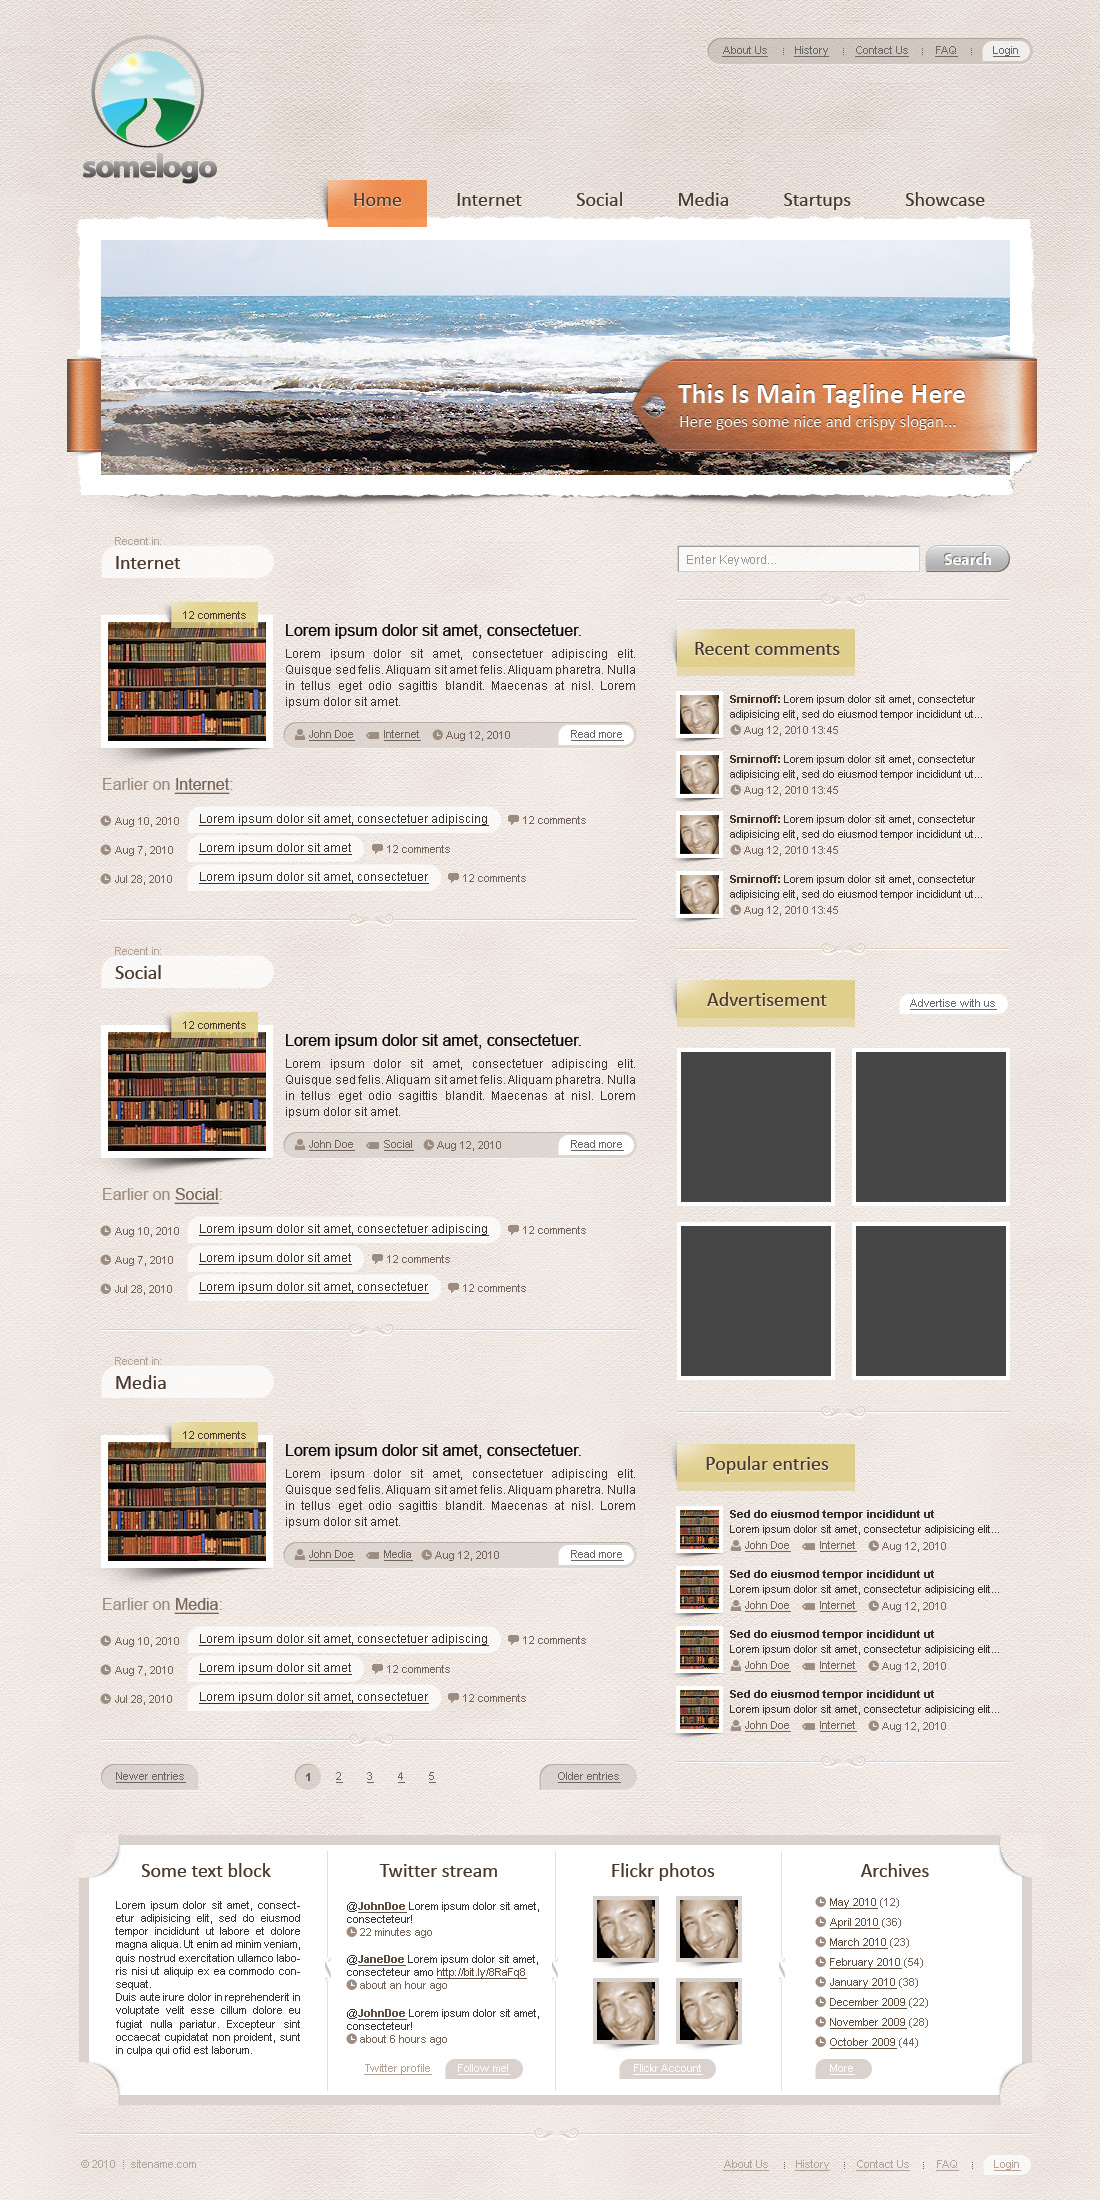 Appealing blog template